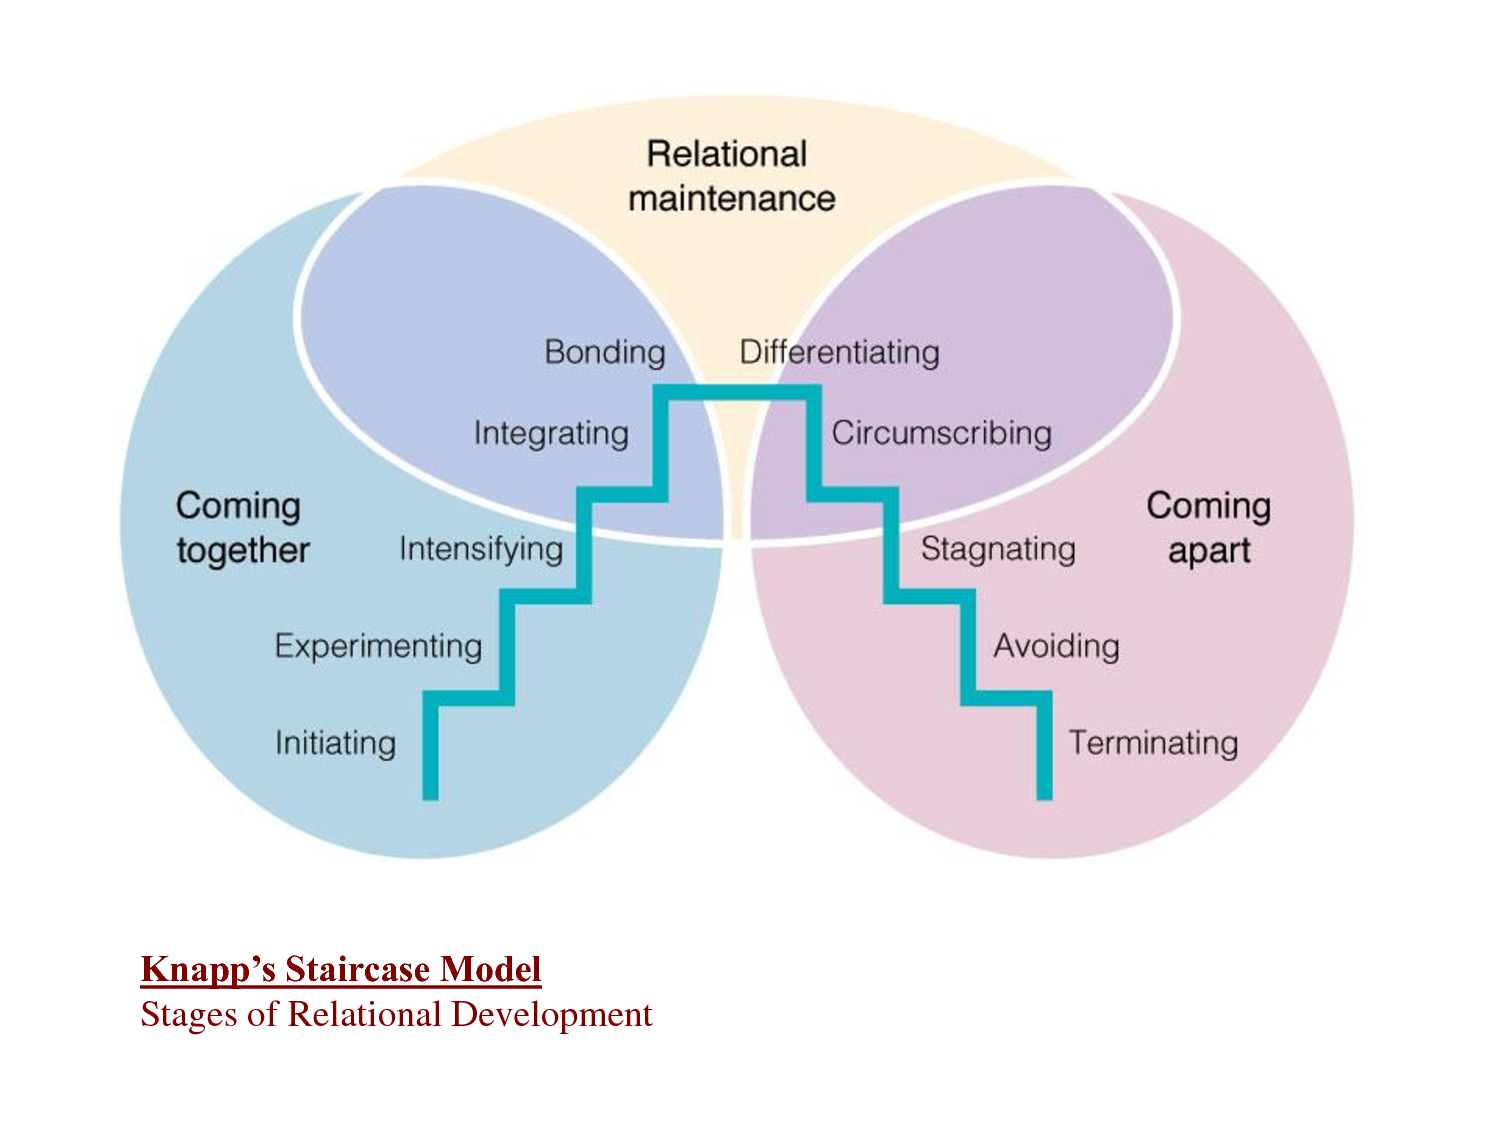 Knapp's Relational Development Model